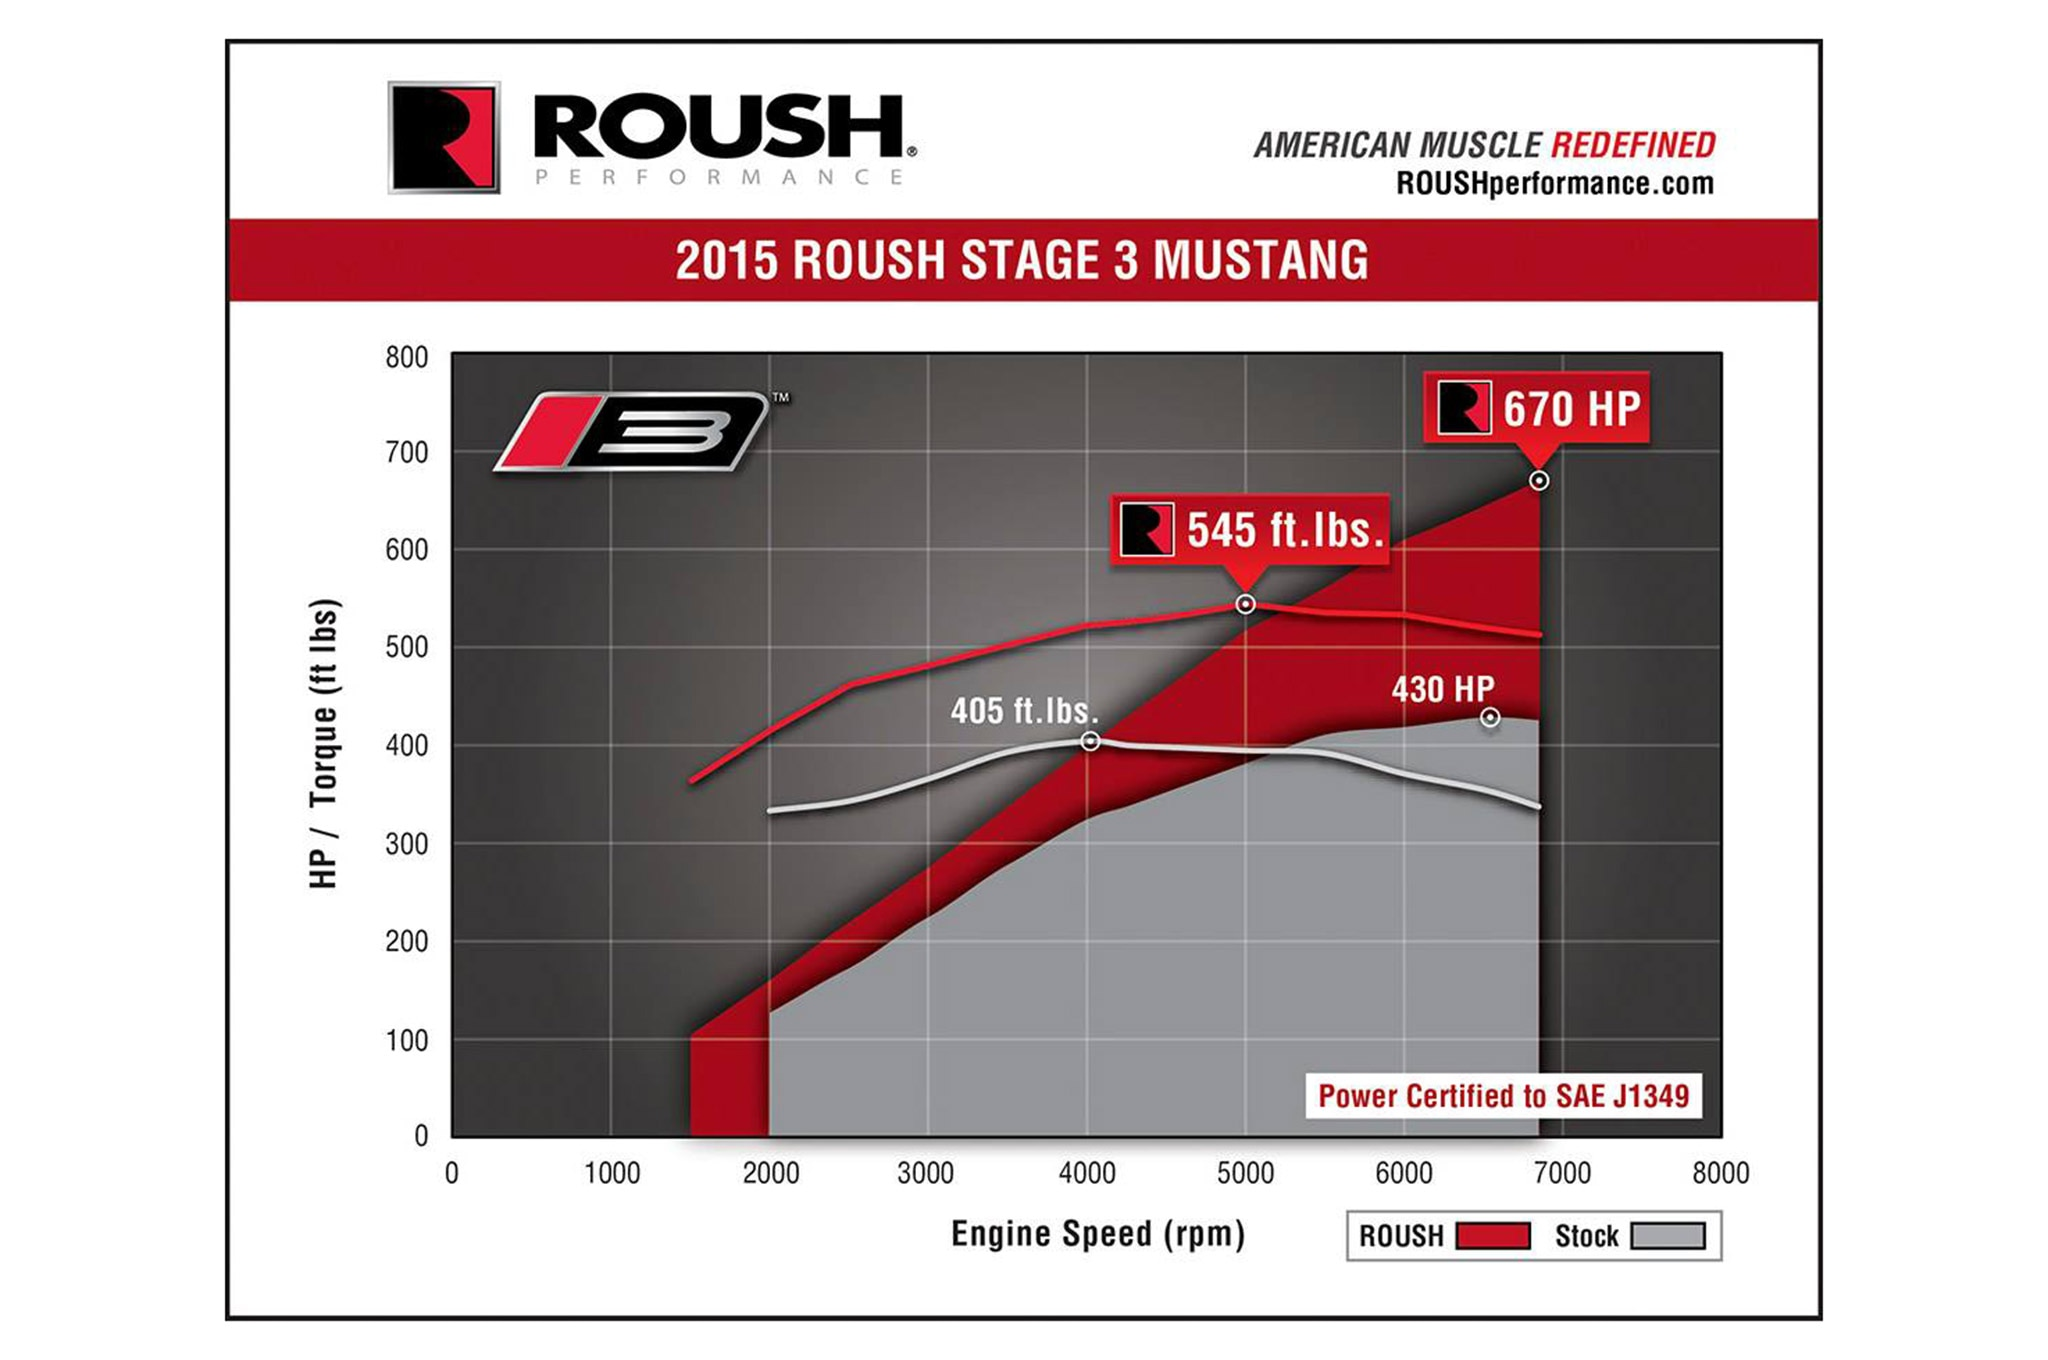 2015 Roush Stage 3 Mustang Horsepower Chart